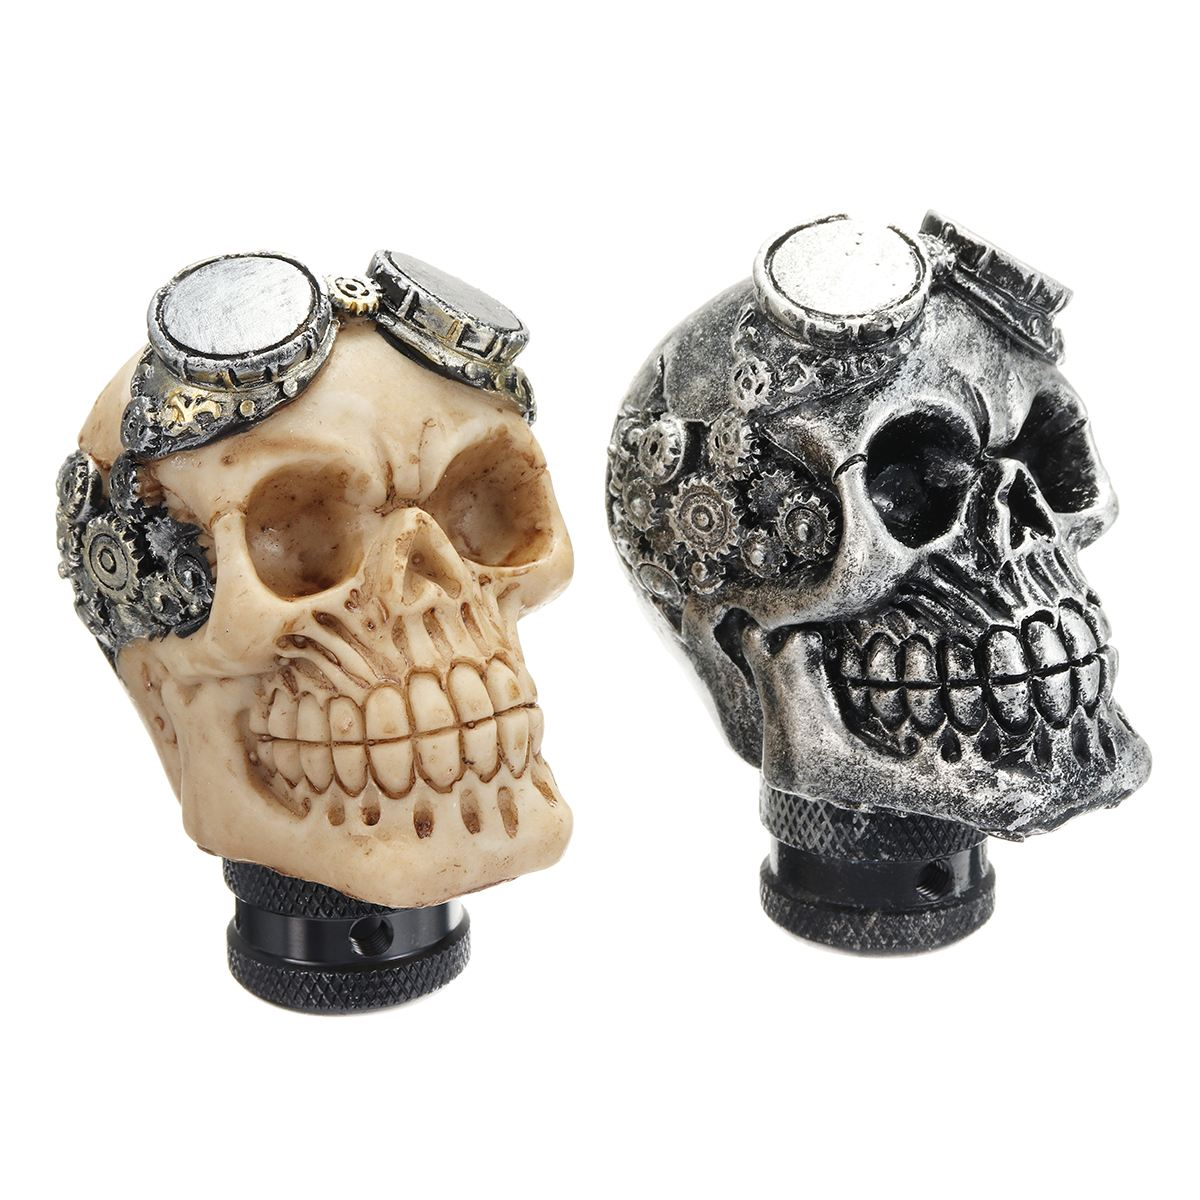 Universal Car Gear Shift Knobs Skull Head Gear Manual Transmission Gear Shift Knob Shifter Lever вытяжка каминная kronasteel krona irida 600 white sensor белый